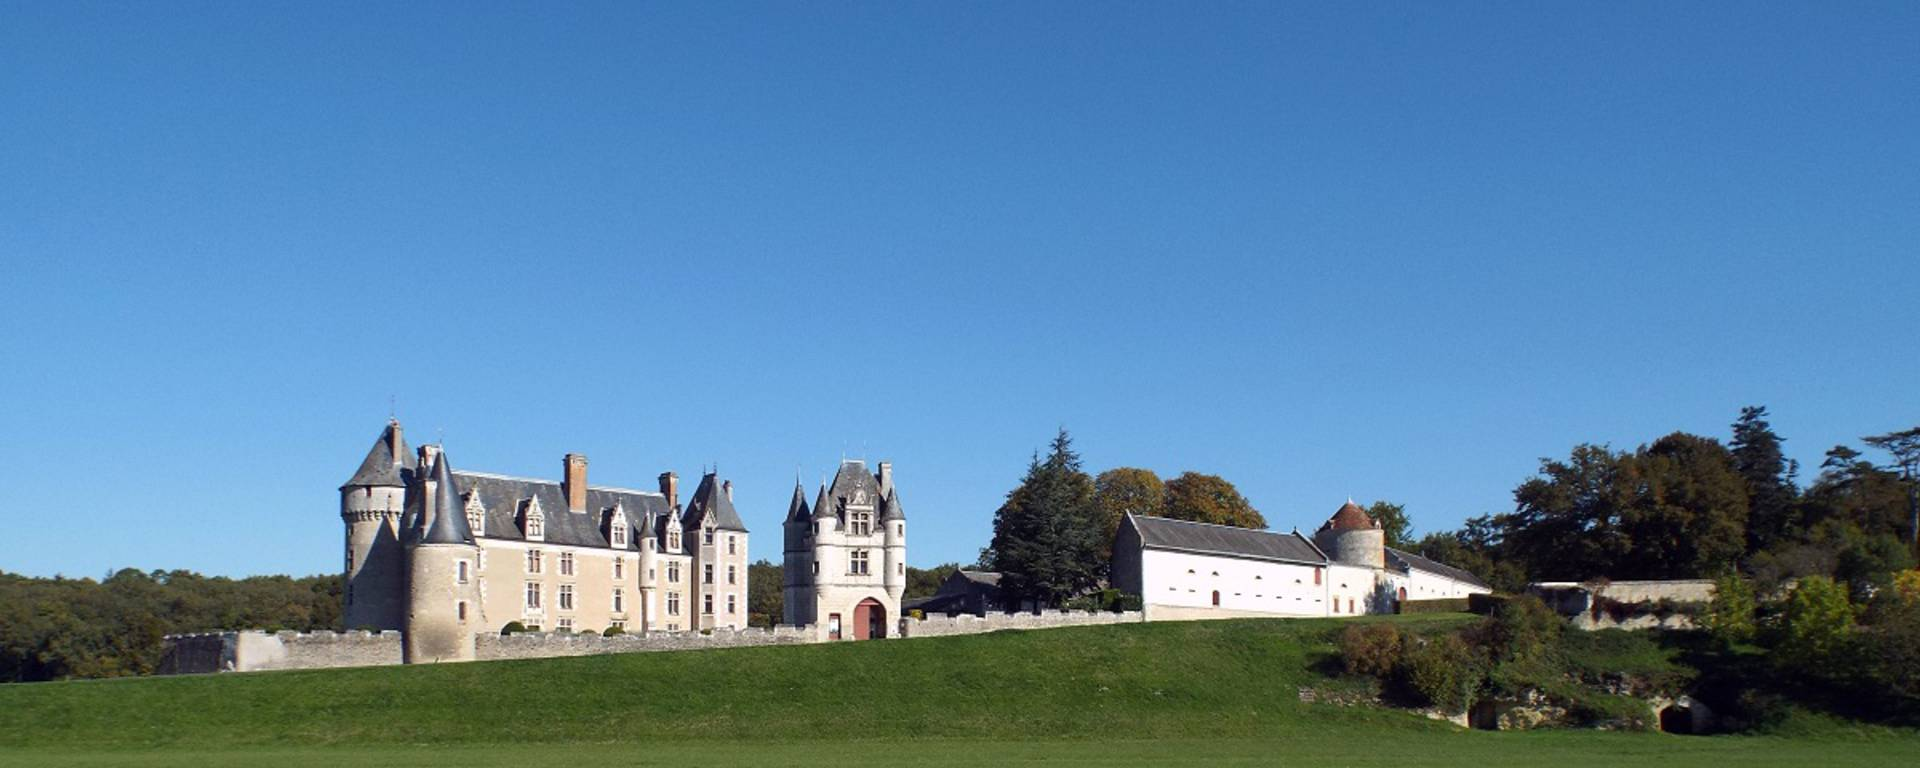 Exterior view of the Château de Montpoupon. © Blois-Chambord Tourist Office